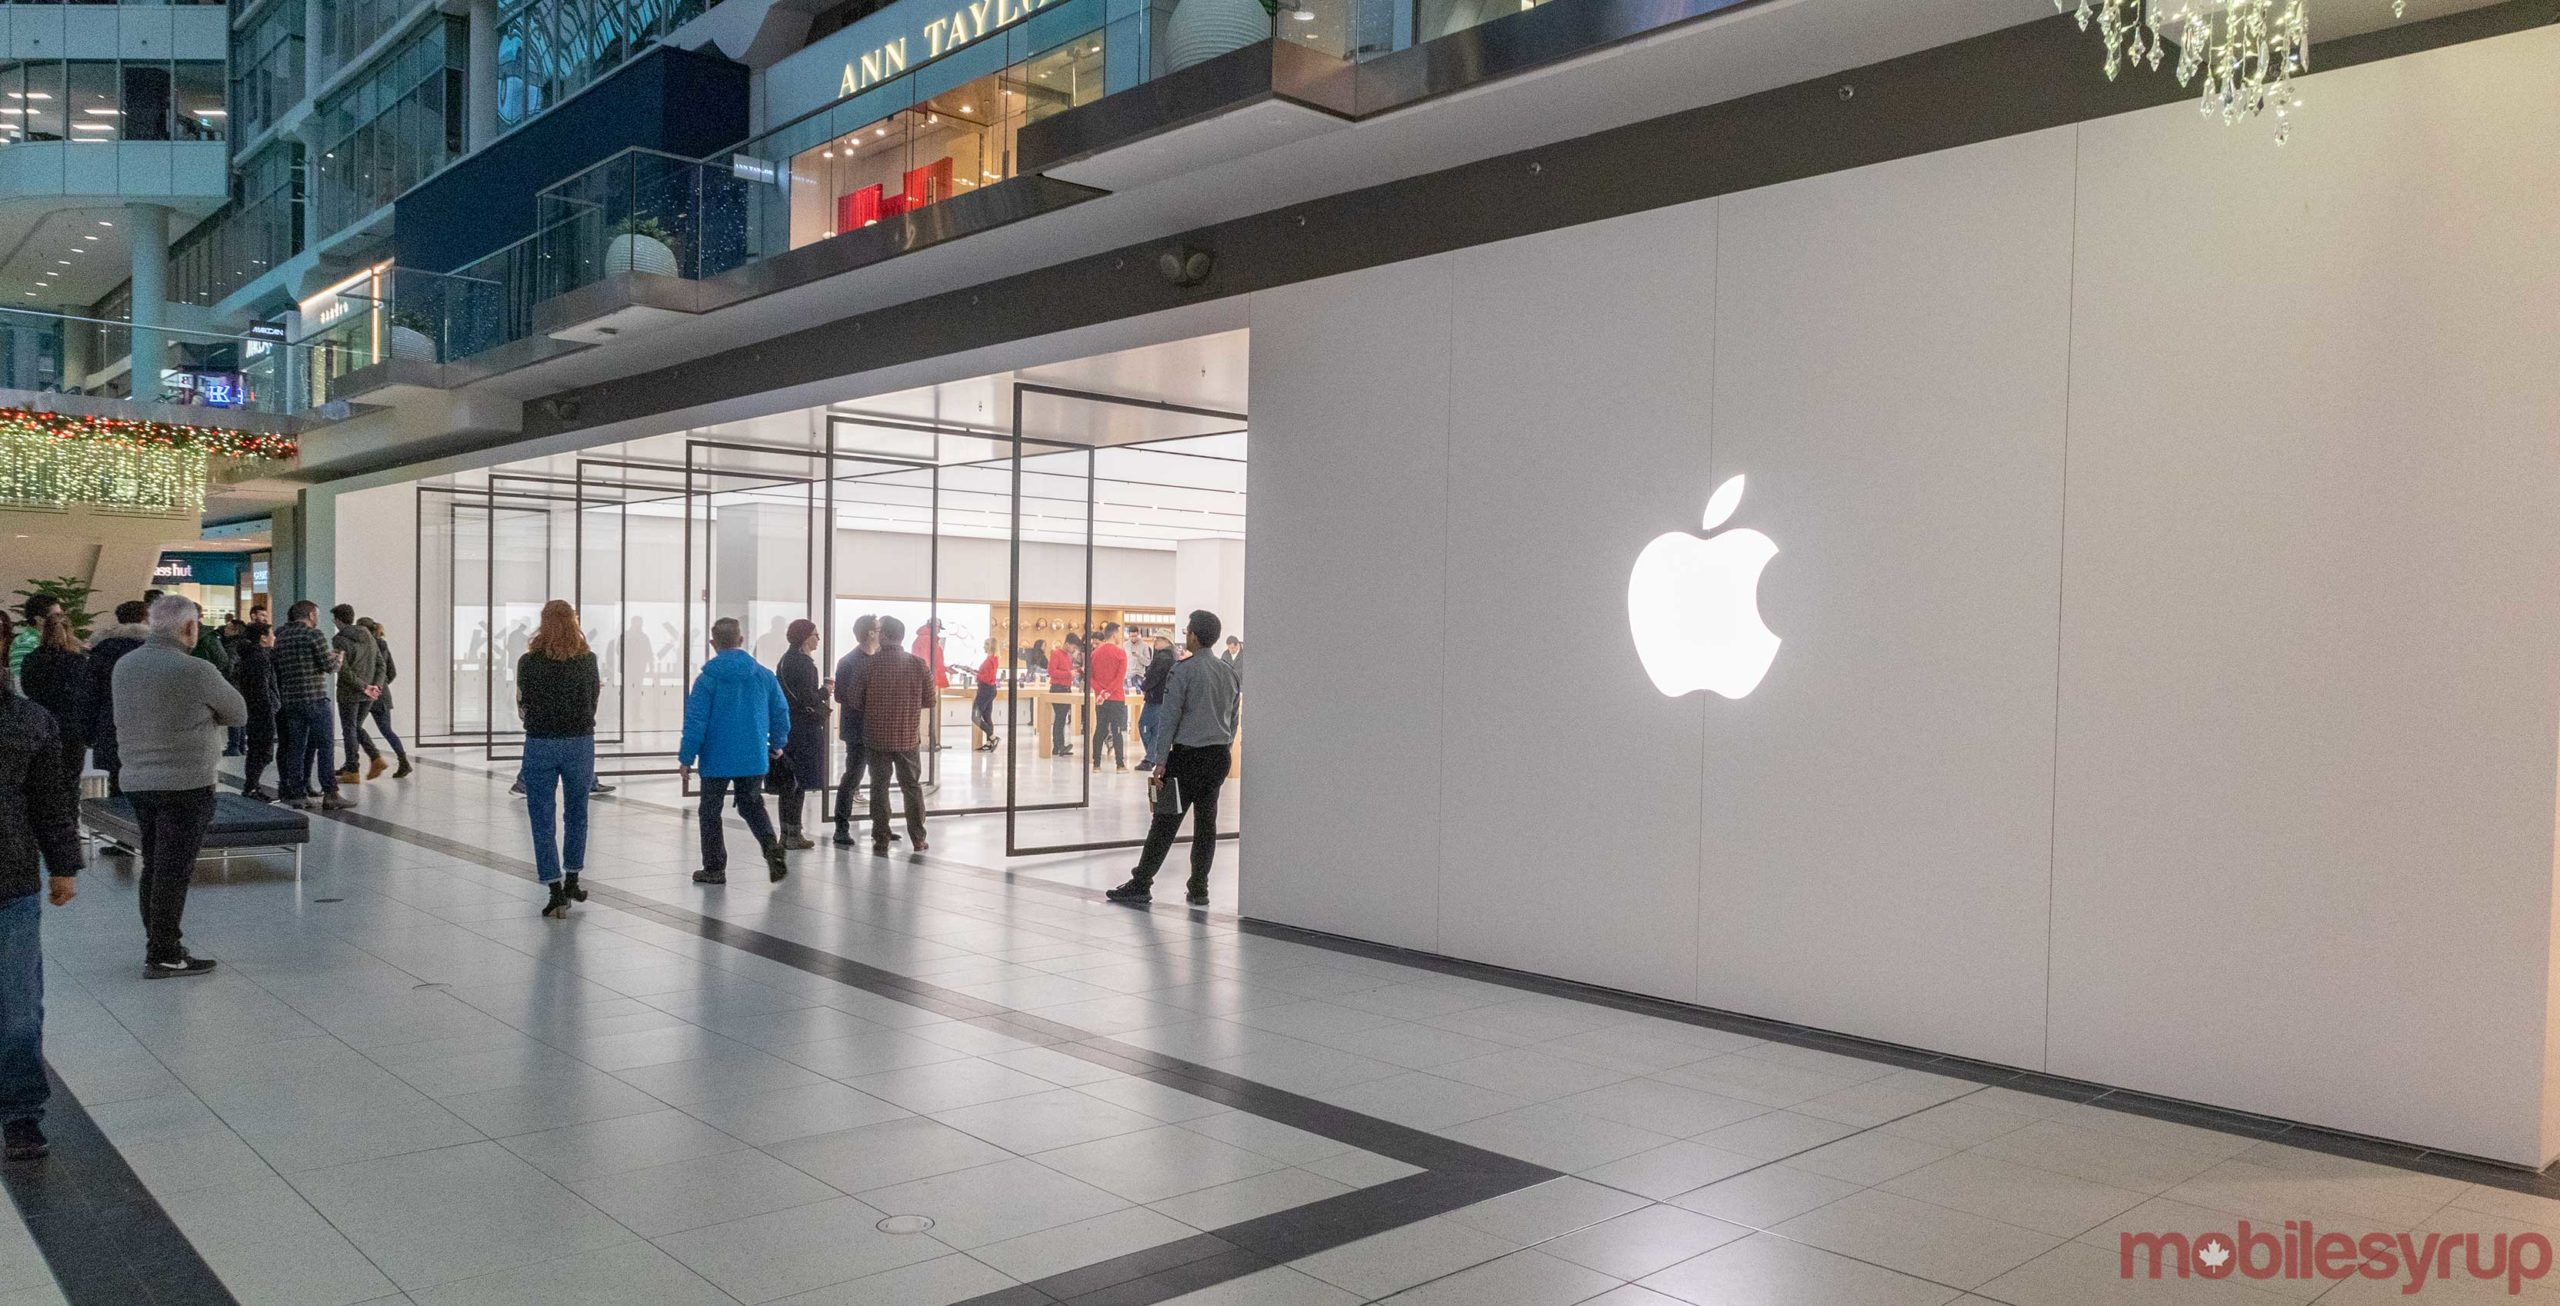 Apple opens new store in Toronto's Eaton Centre mall